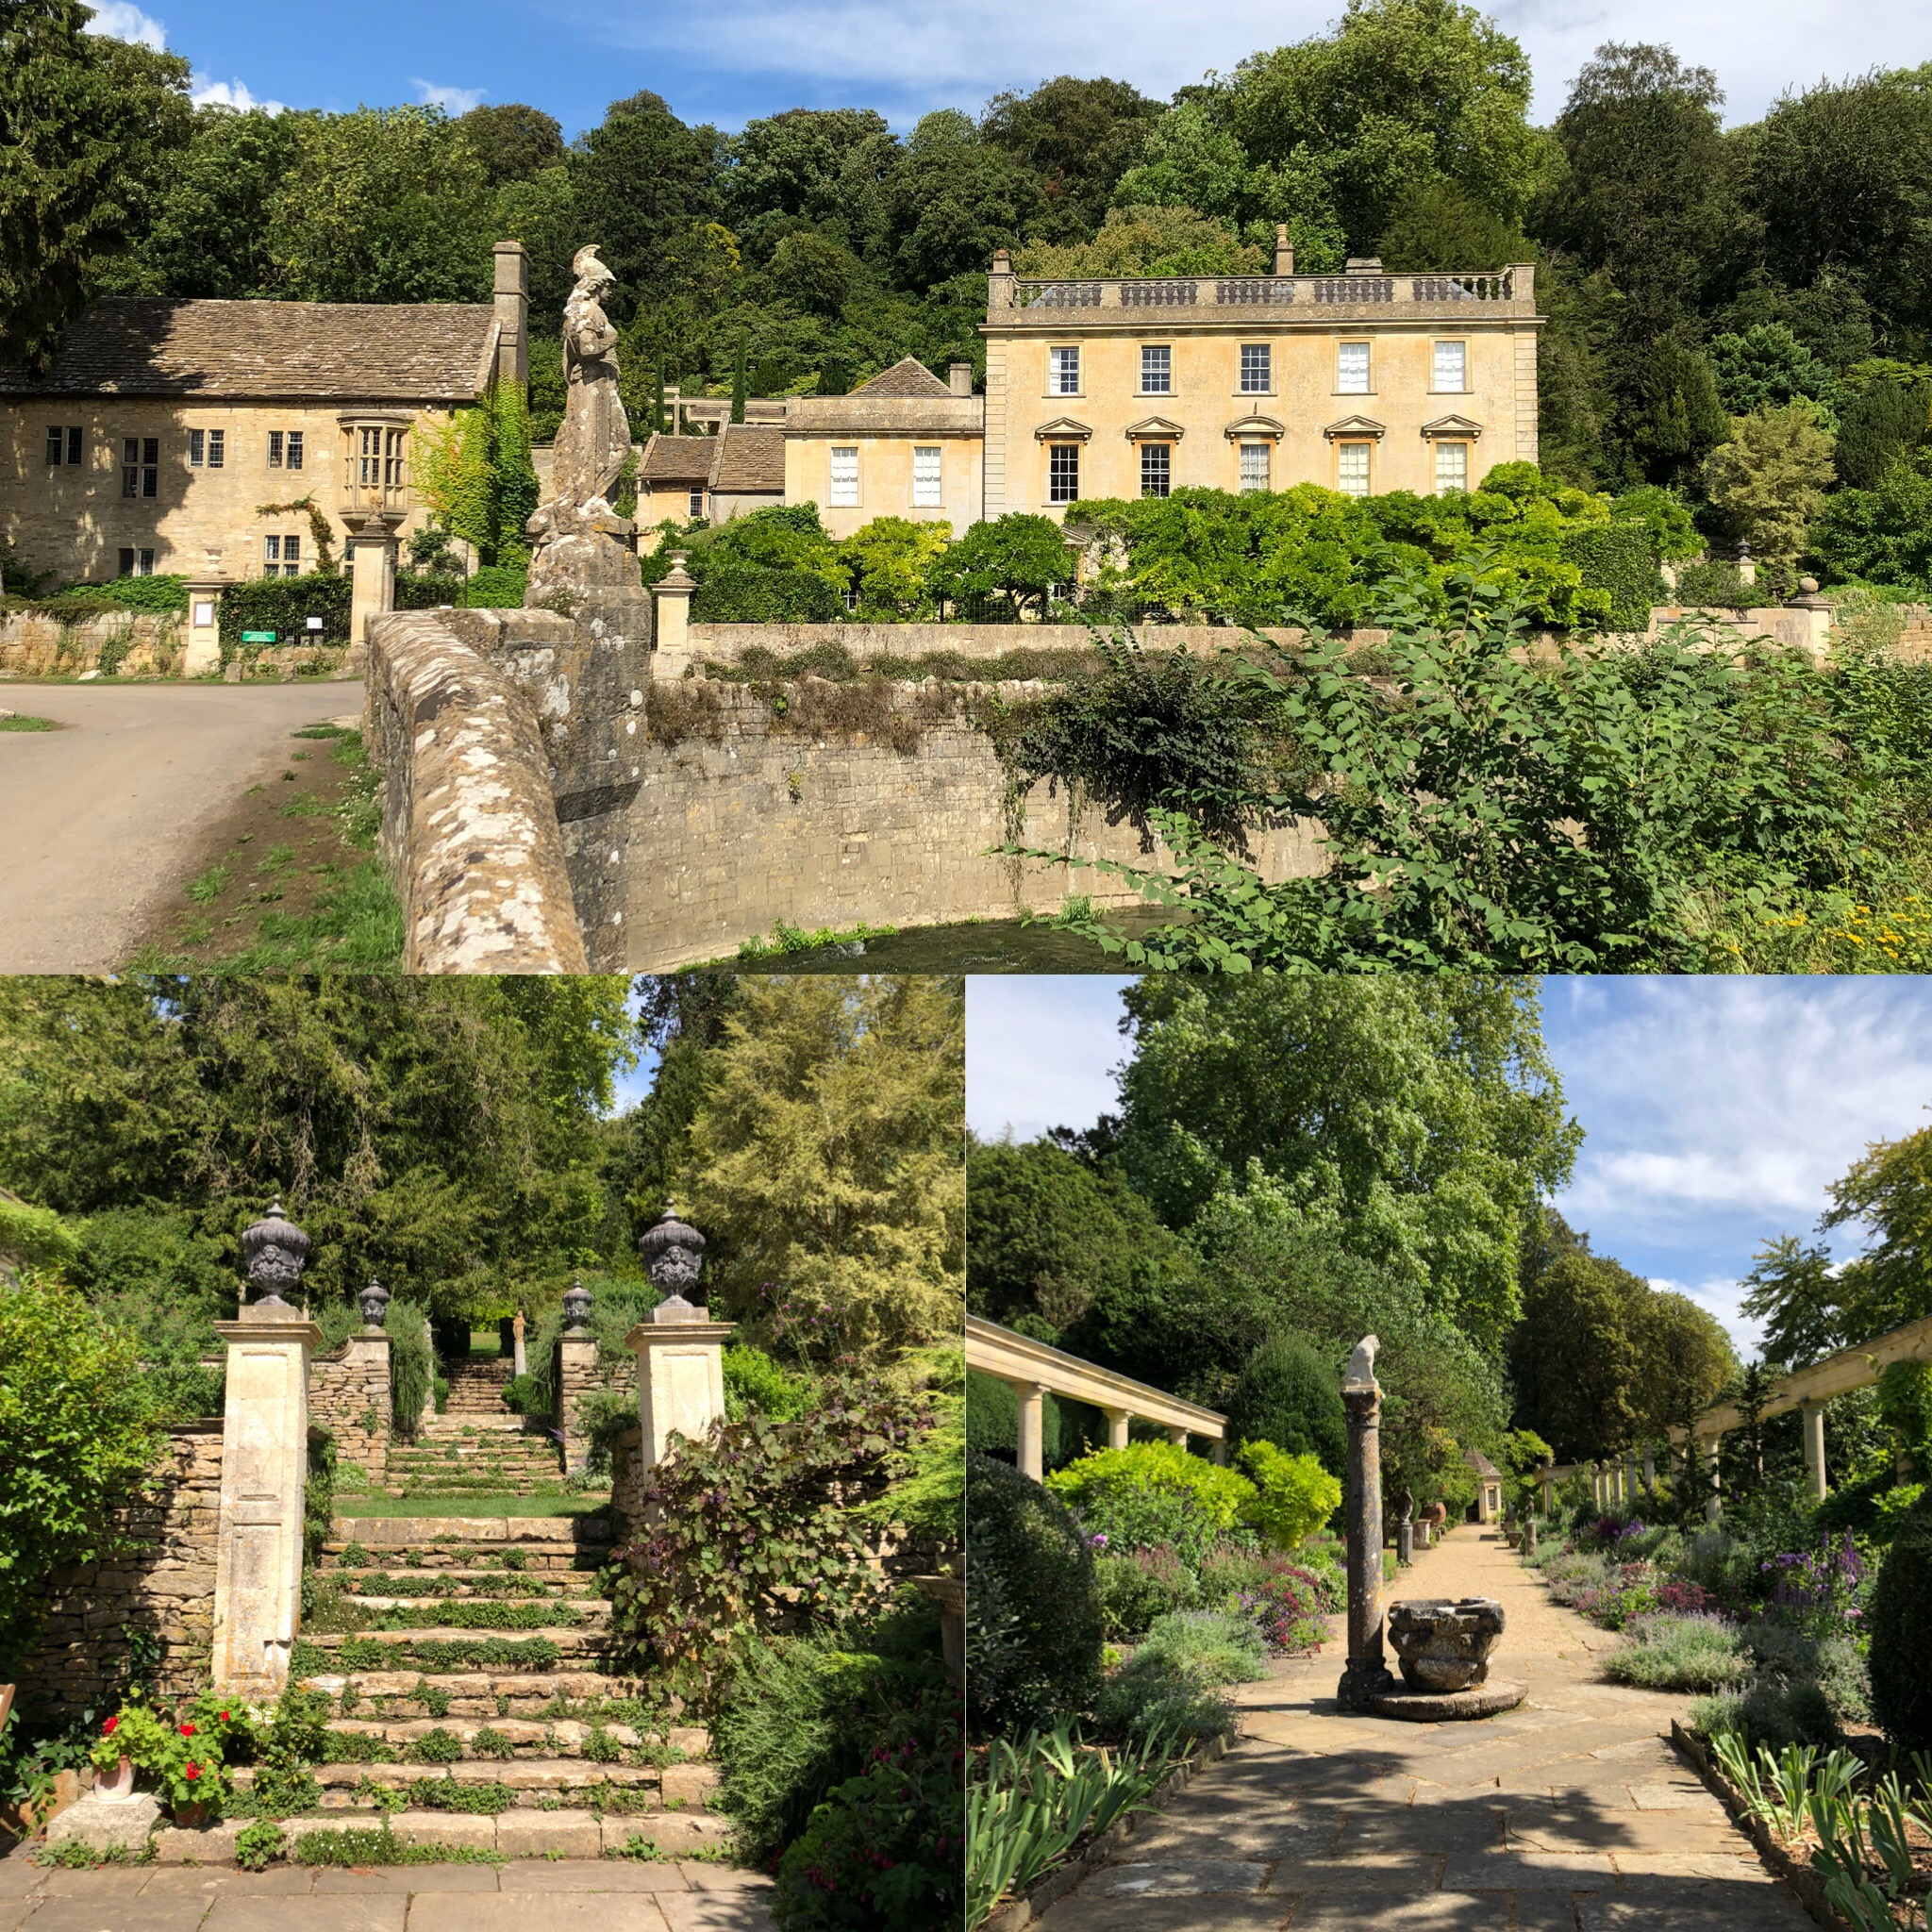 Iford Manor And Gardens